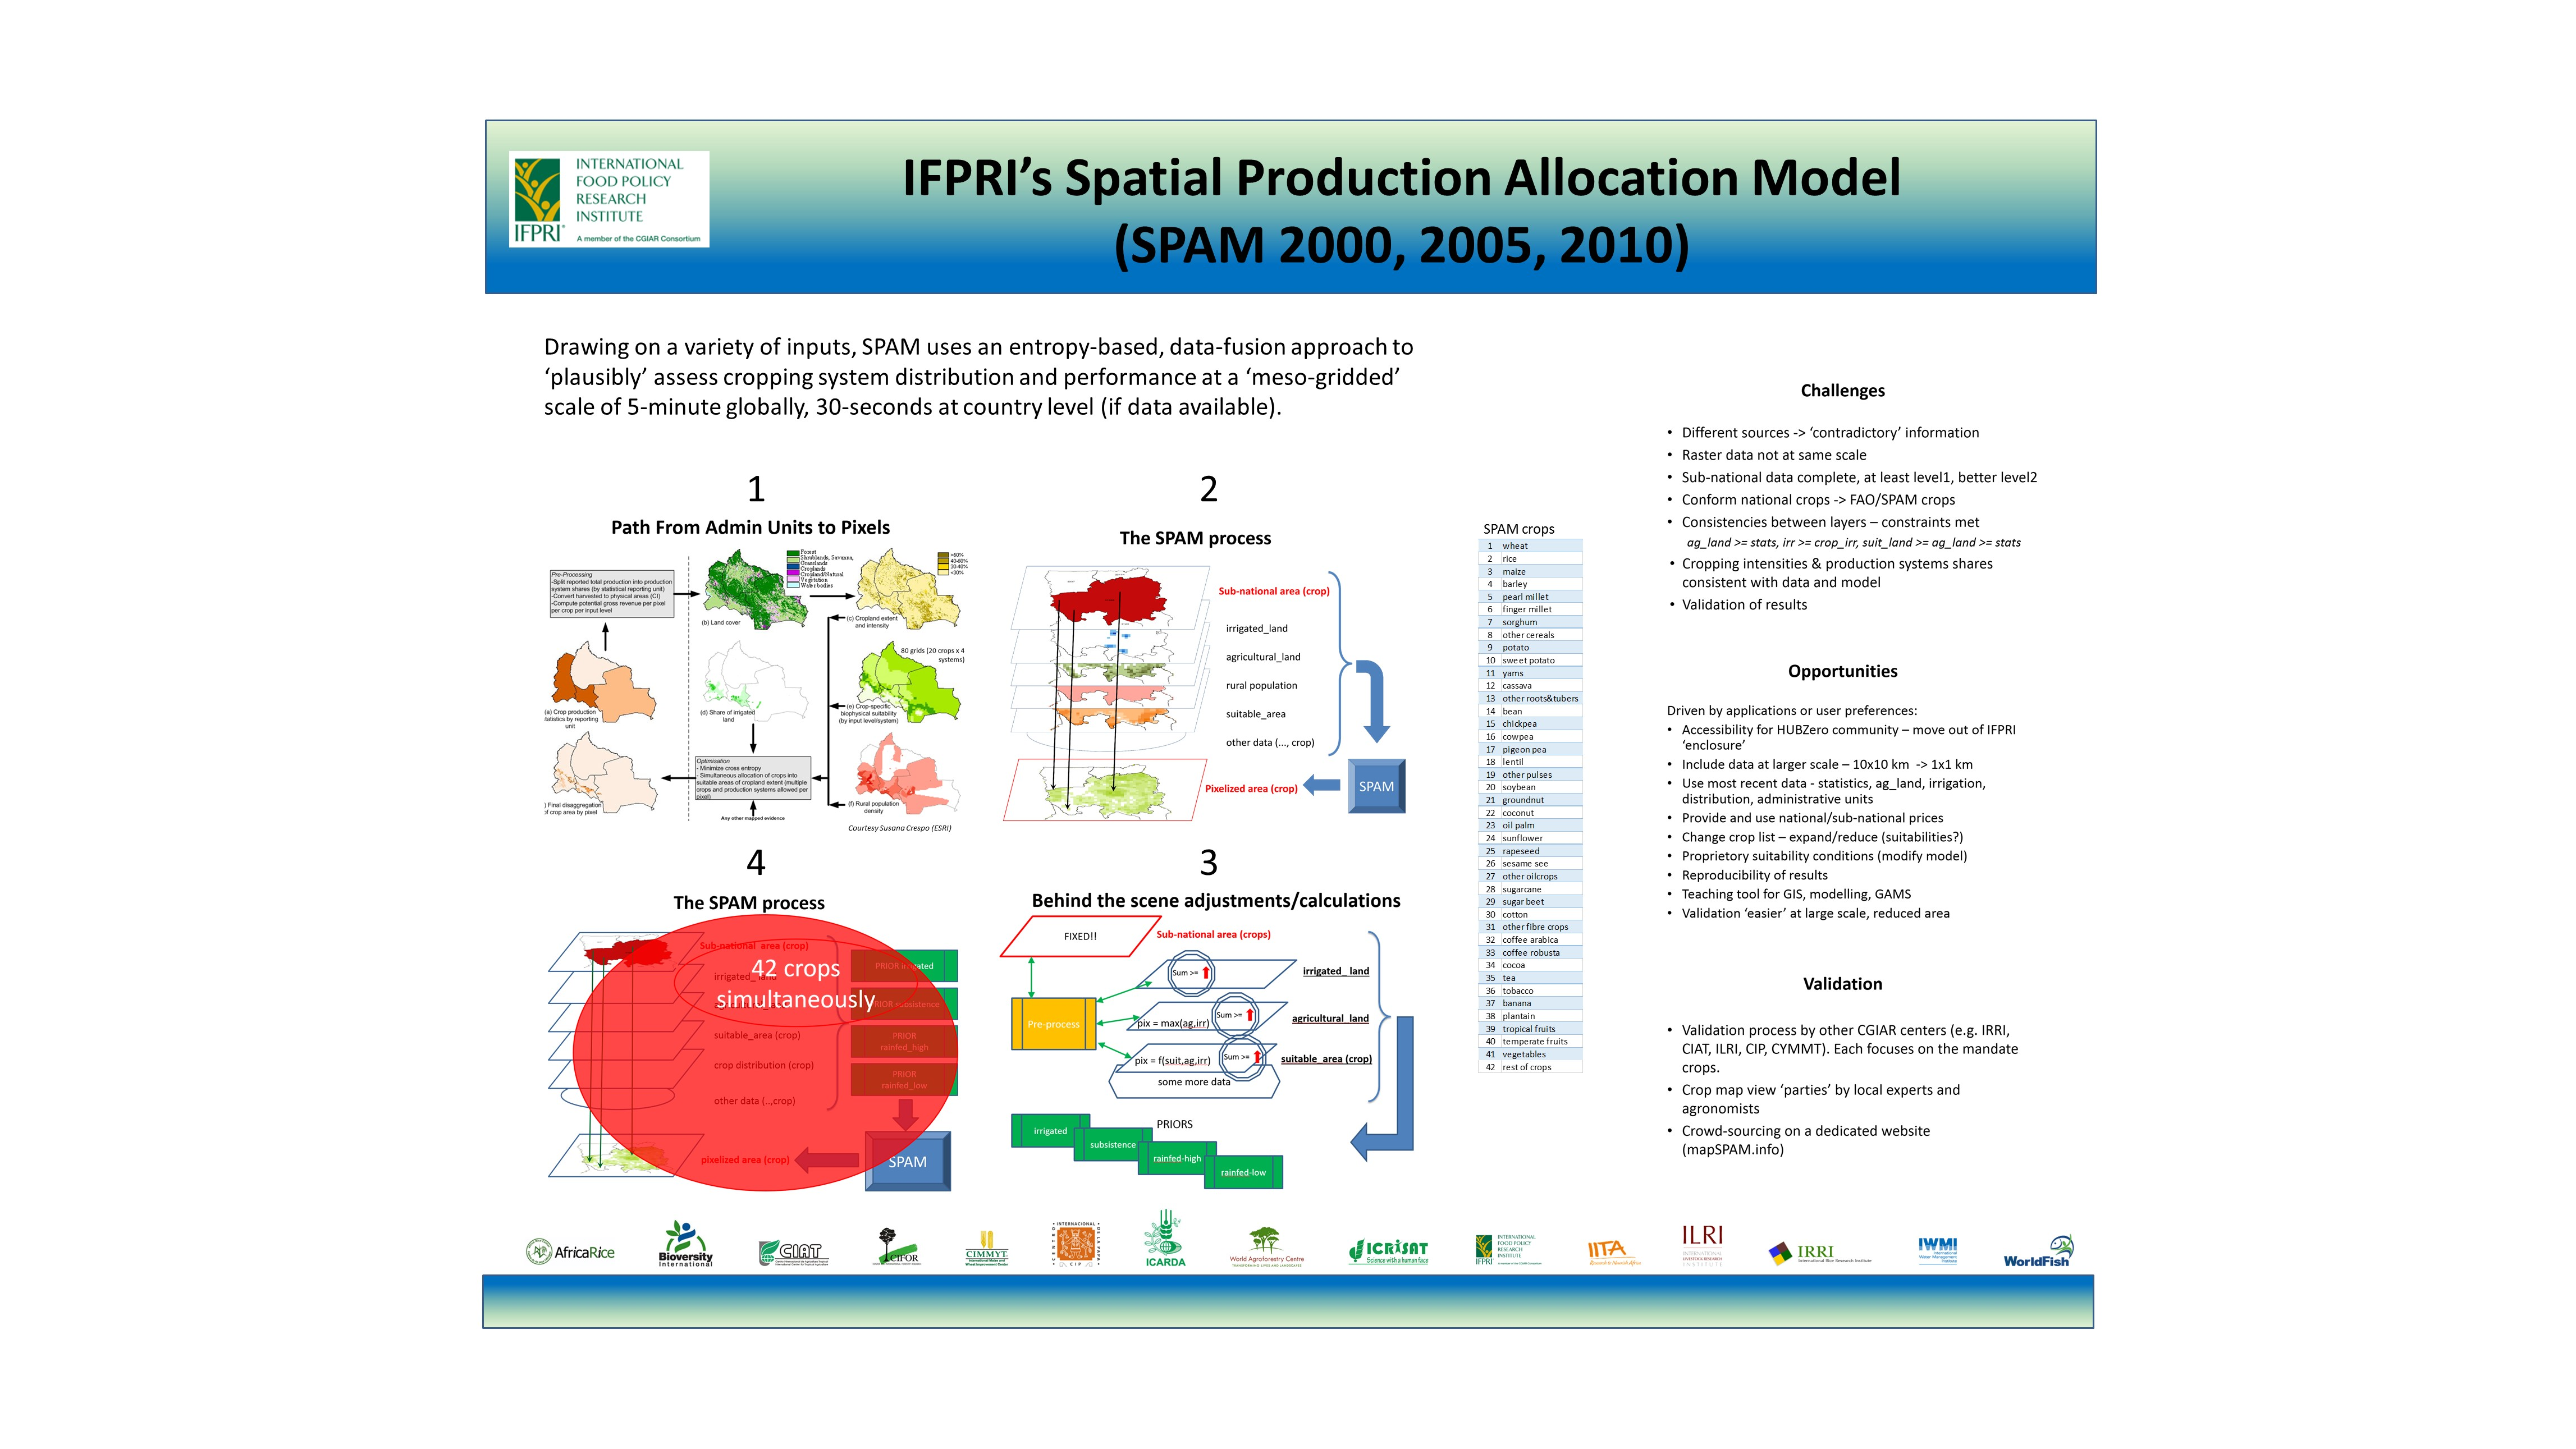 IFPRI's Spatial Production Allocation Model (SPAM 2000, 2005, 2010)